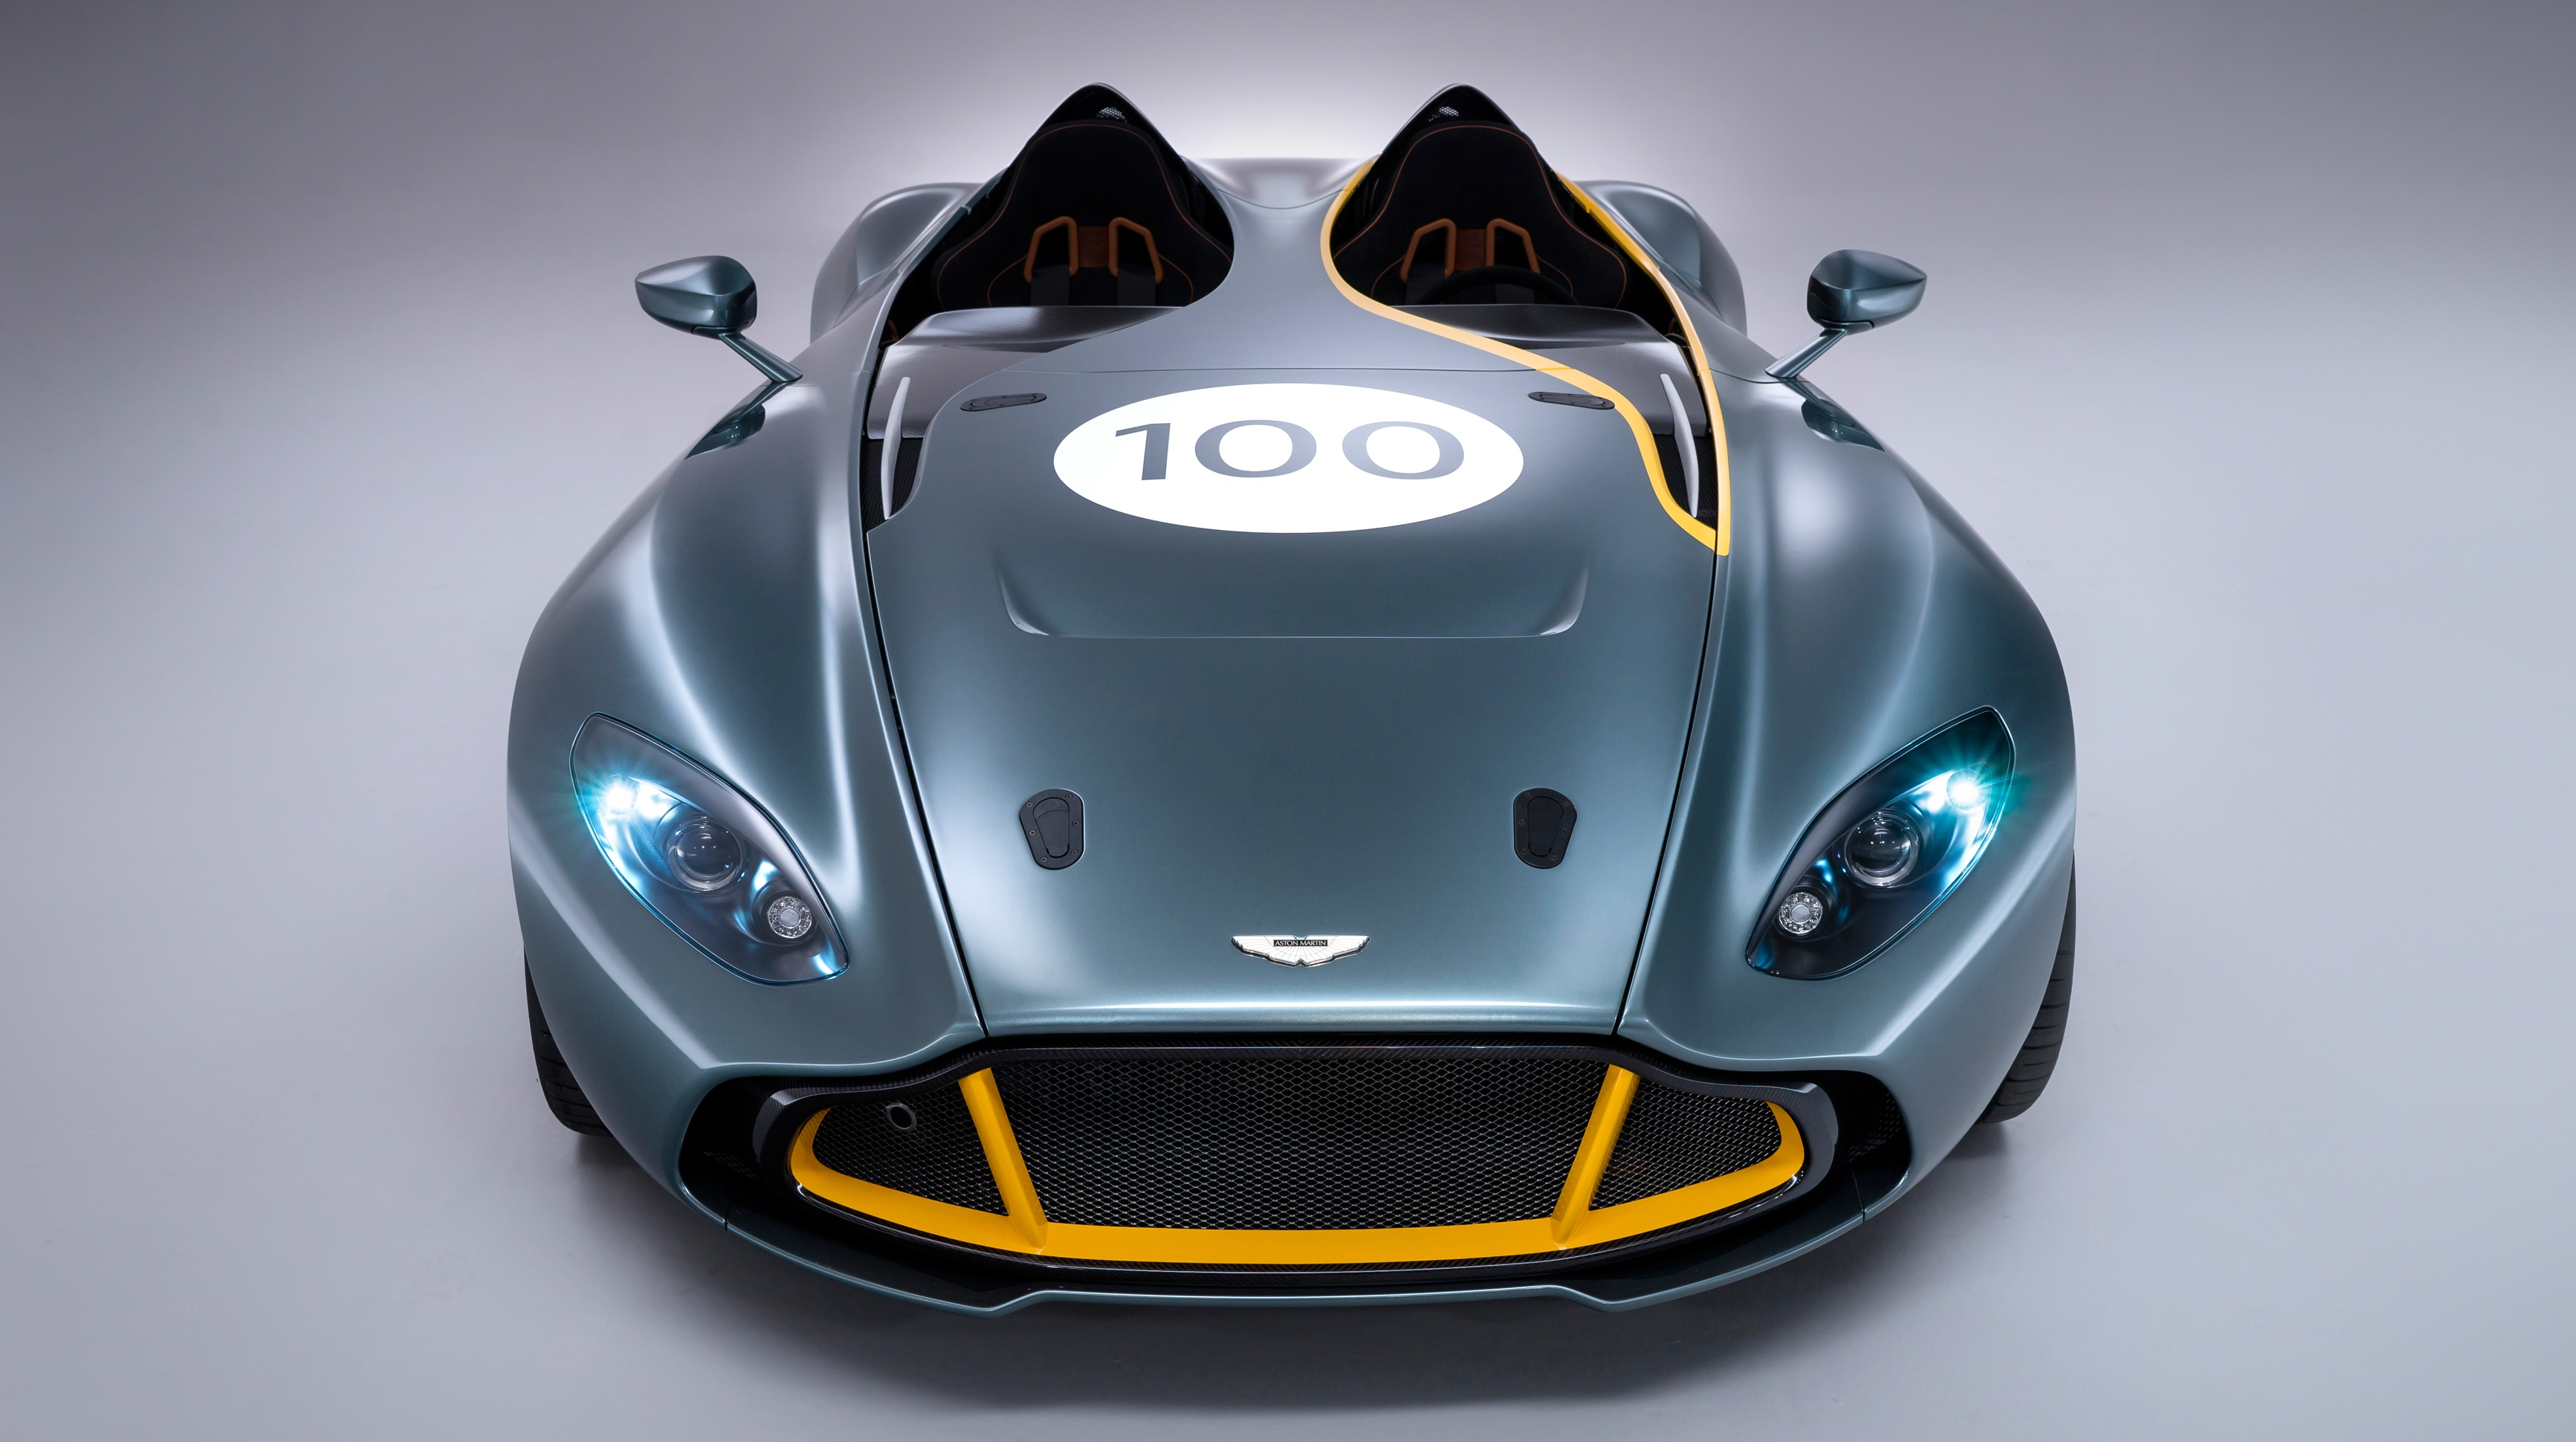 Privacy Policy >> Aston Martin CC100 Speedster Concept is a one-off Paul Tan